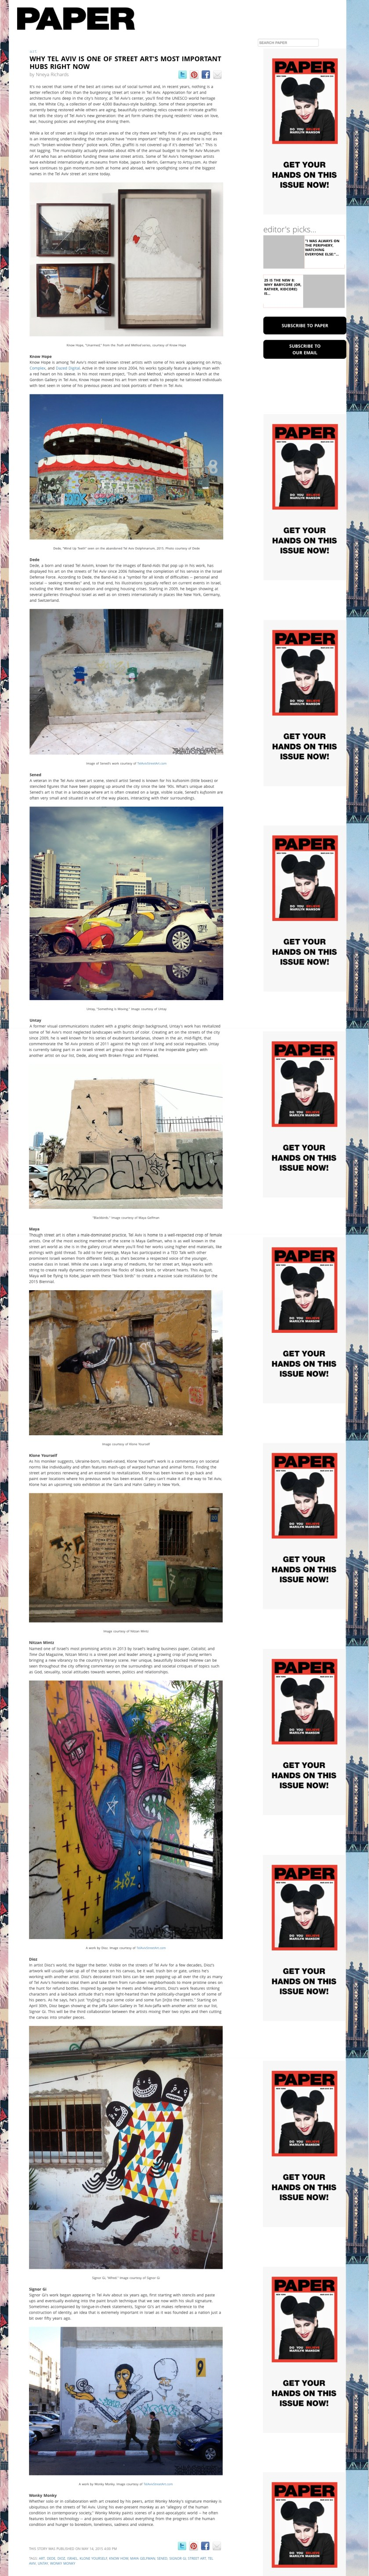 PaperMag.com - 4.14.15 - WHY TEL AVIV IS ONE OF STREET ART'S MOST IMPORTANT HUBS RIGHT NOW